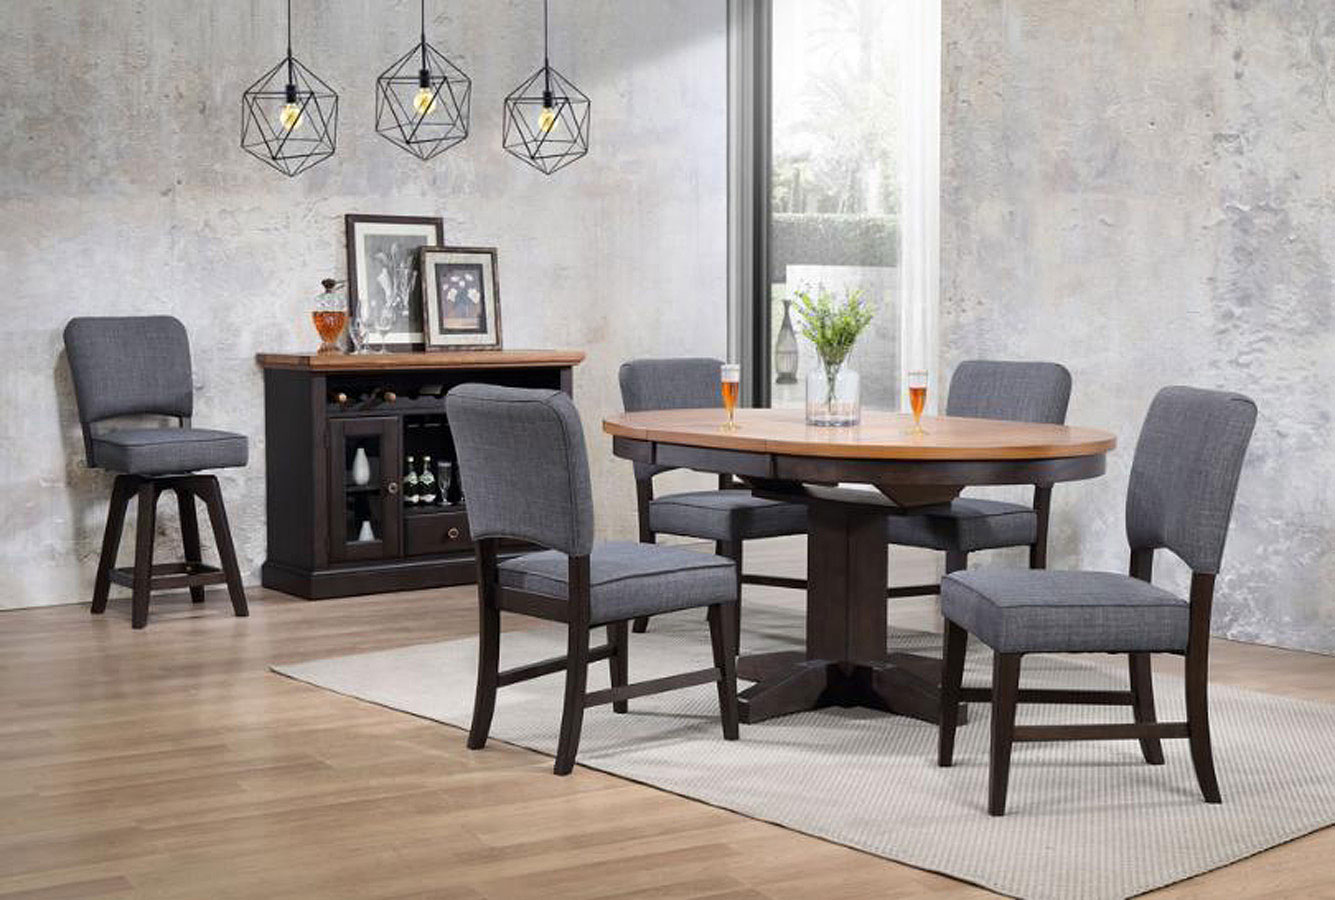 Black Oak Round Dining Room Set W/ Parsons Chairs